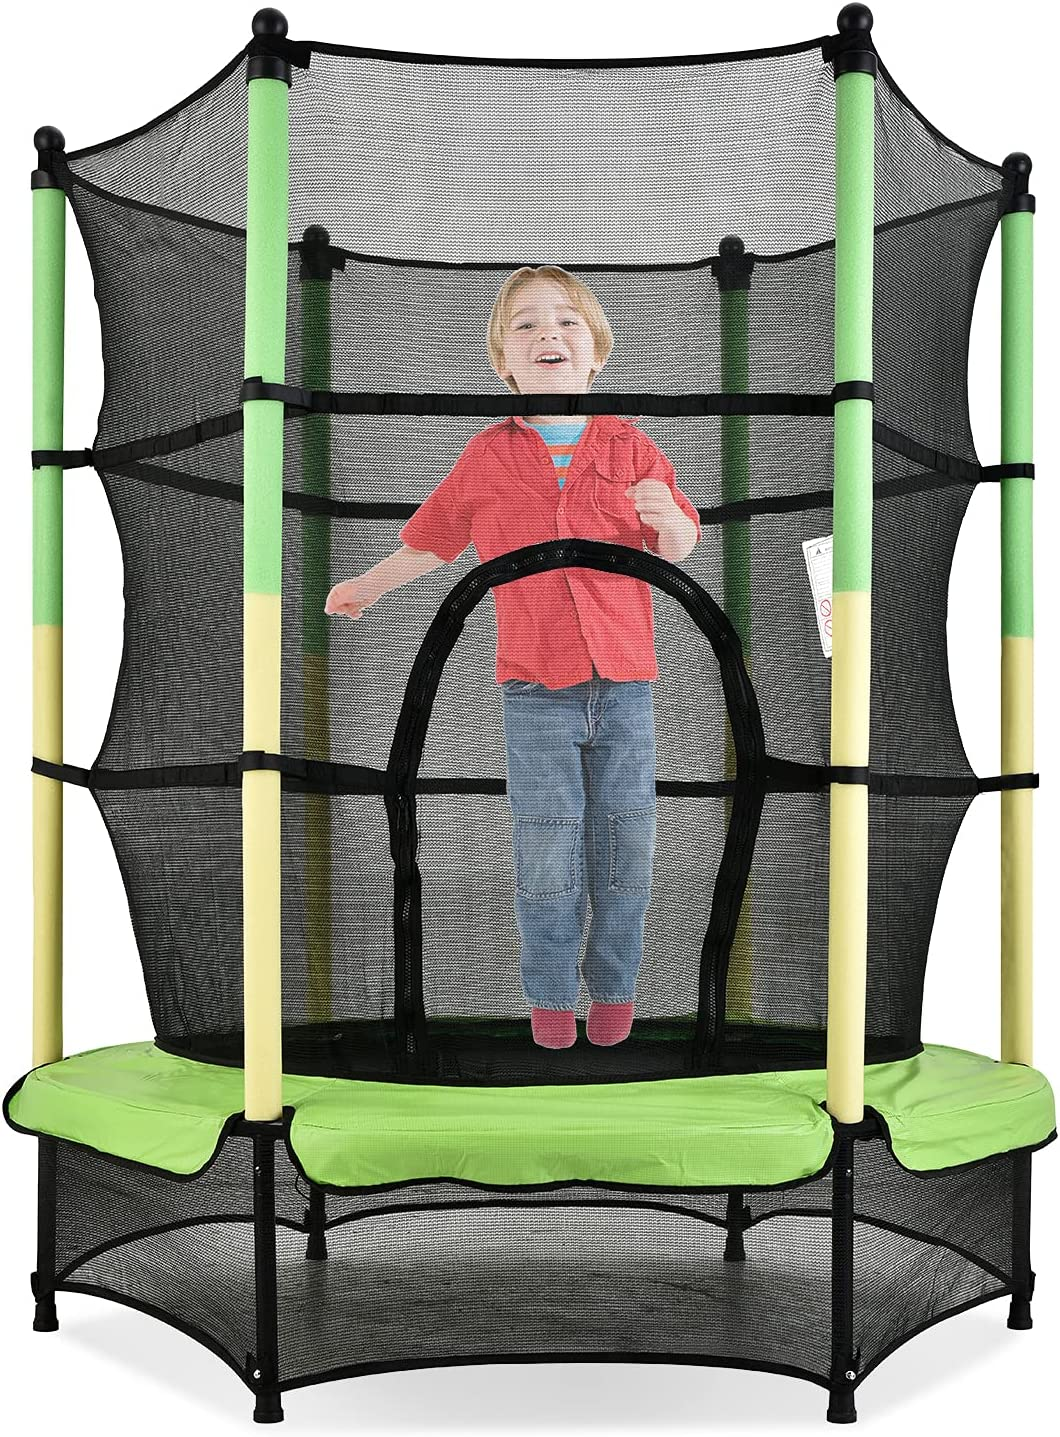 Our shop OFFers the best service 55-inch Trampoline for Children Pole Yellow-Green Yellow Guard Popular